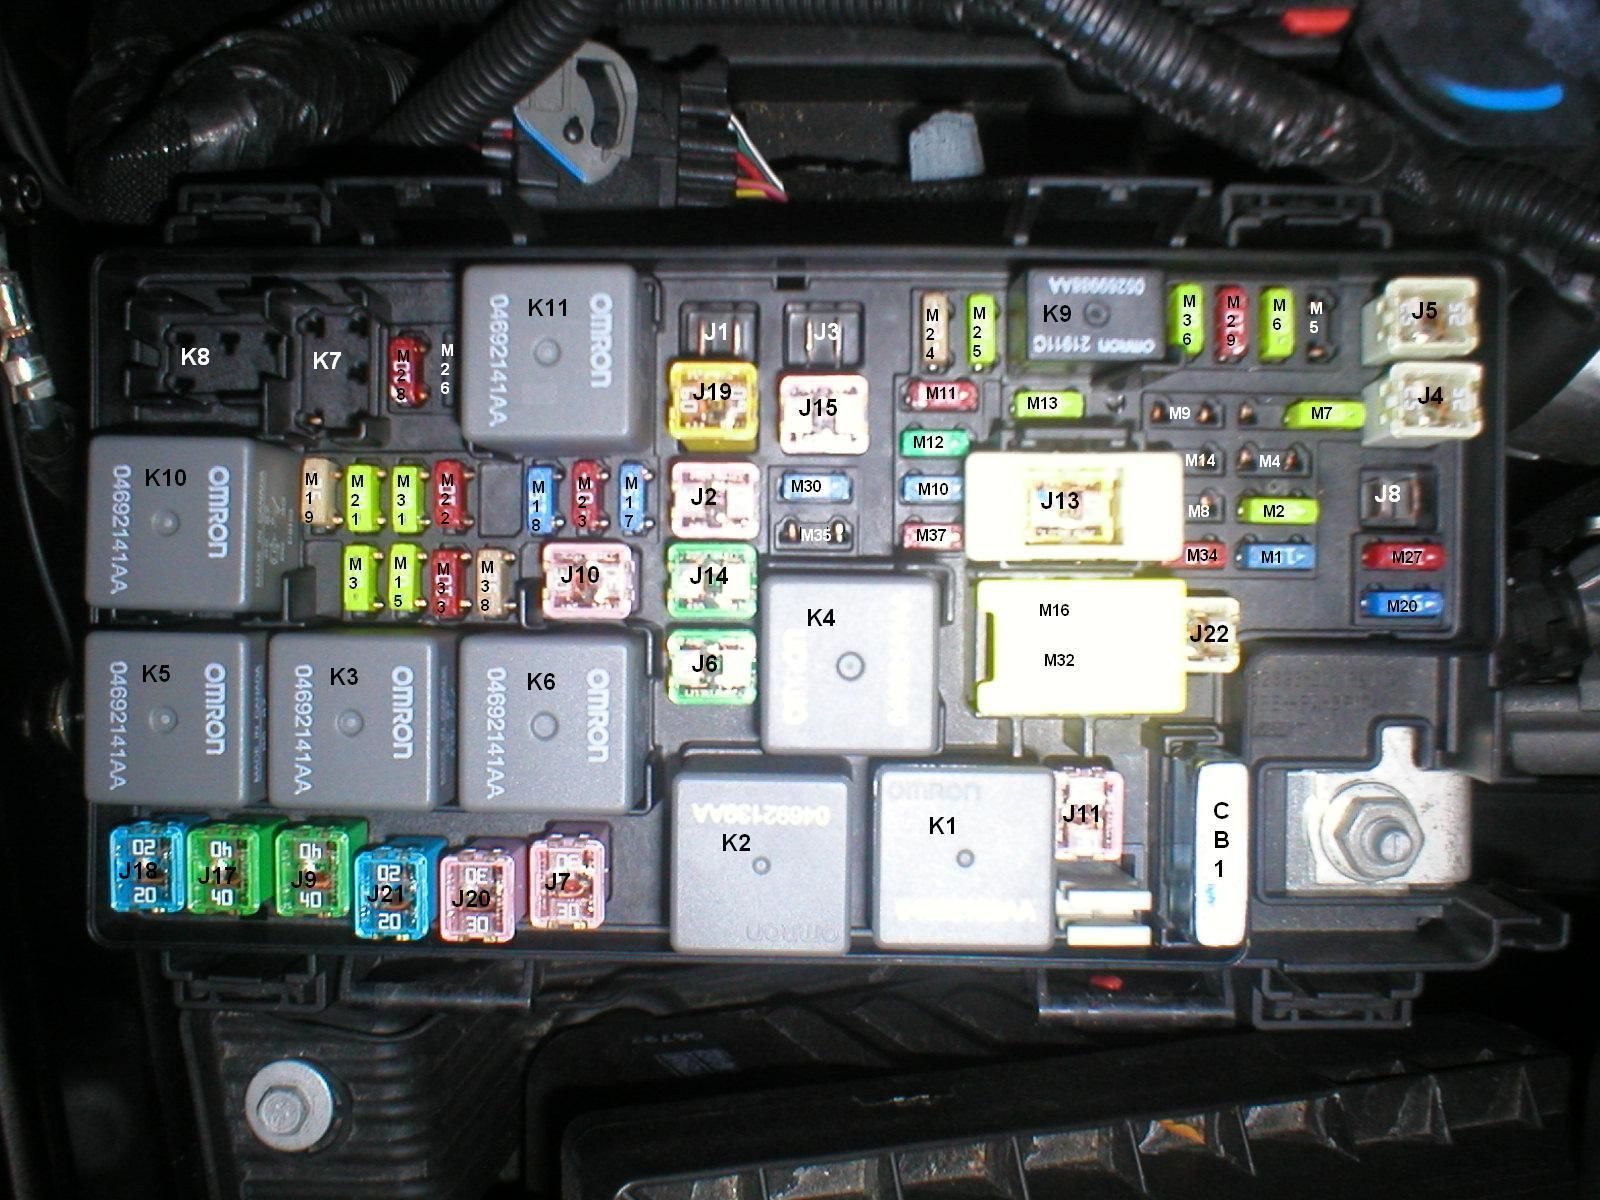 Fuse Box For Jeep Wrangler 2007 List Of Schematic Circuit Diagram Painless Wiring 50001 Jk Map Layout Jeepforum Com Just Empty Rh Pinterest